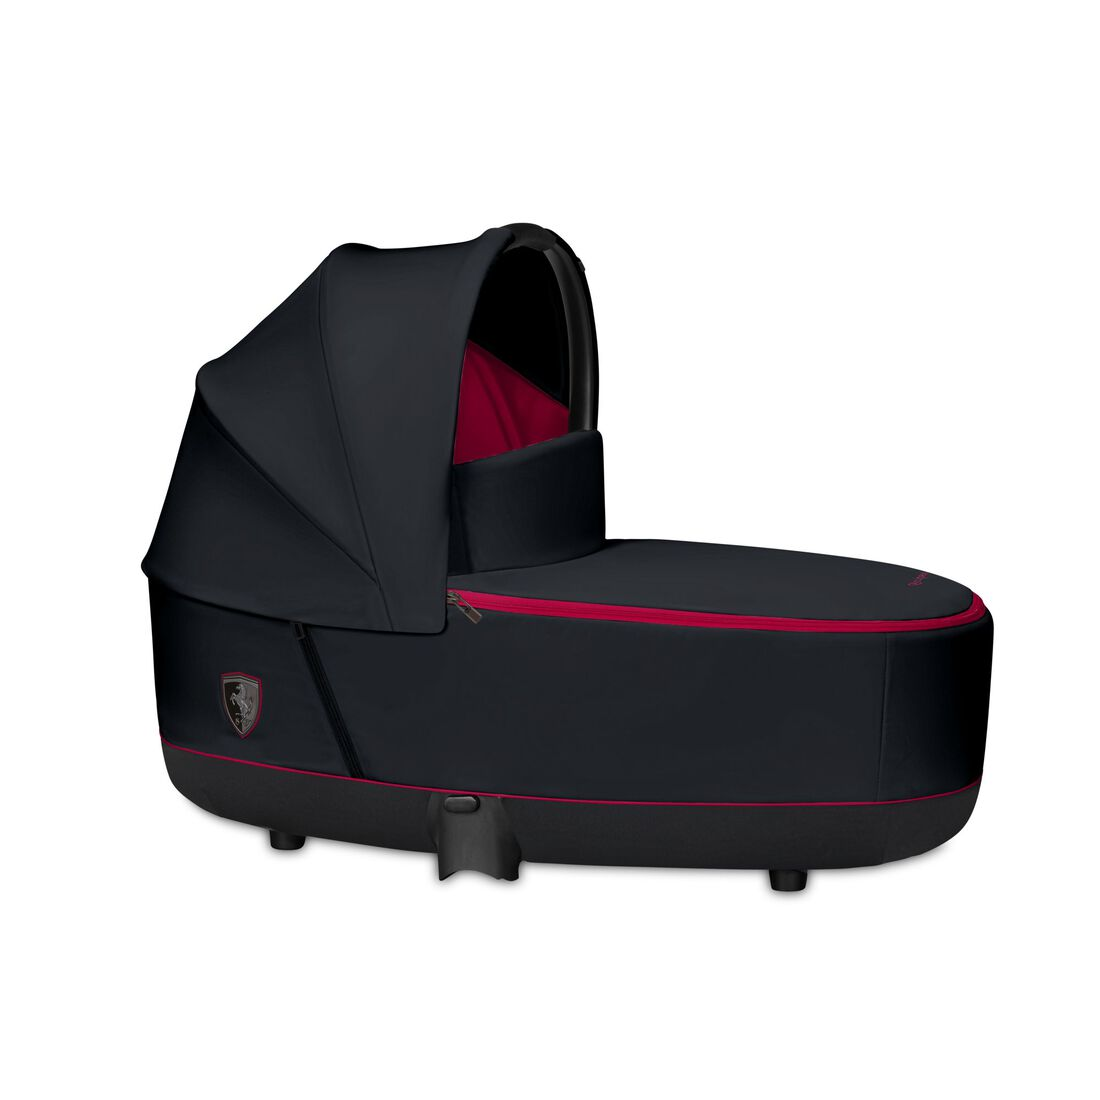 CYBEX Priam Lux Carry Cot - Ferrari Victory Black in Ferrari Victory Black large Bild 1